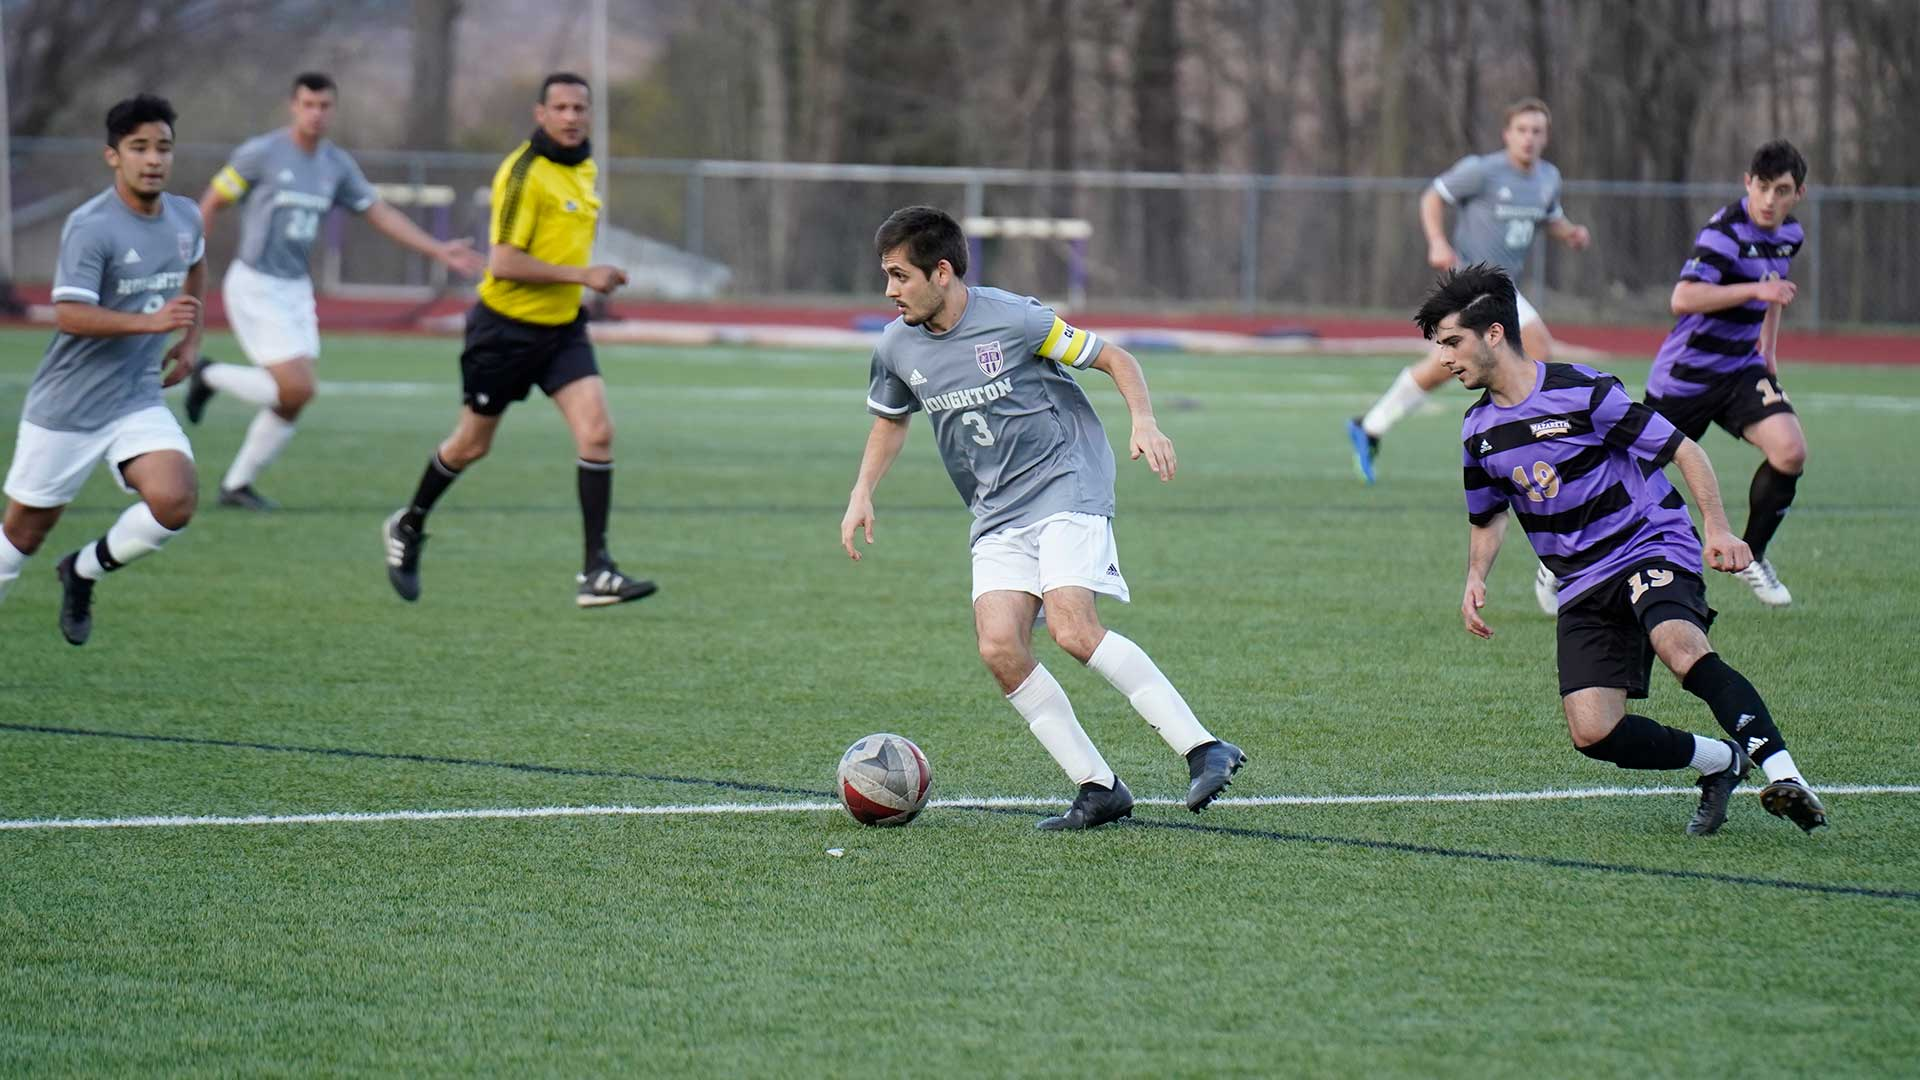 men's soccer player running with ball on field